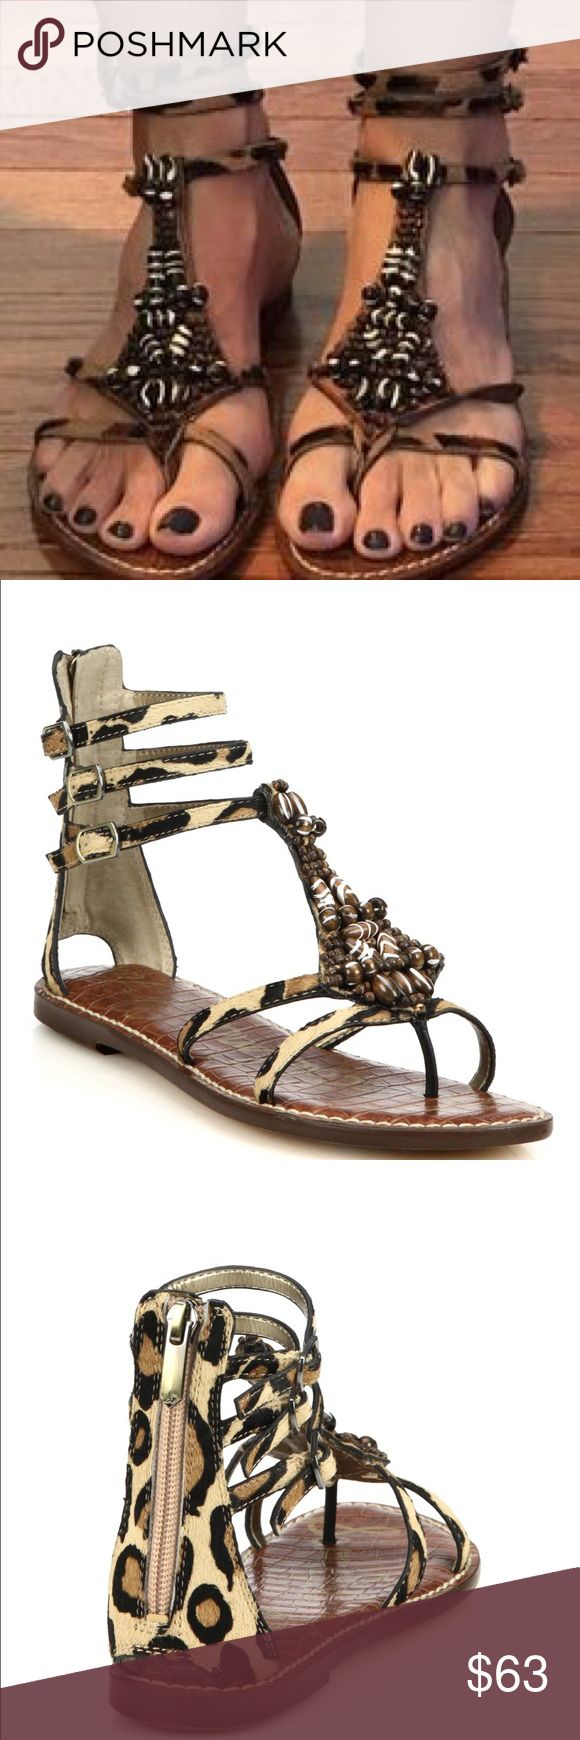 Sam Edelman Sandals Women's leopard print sandals with beaded material. Worn, but in great condition! Not sure of original price. Sam Edelman Shoes Sandals